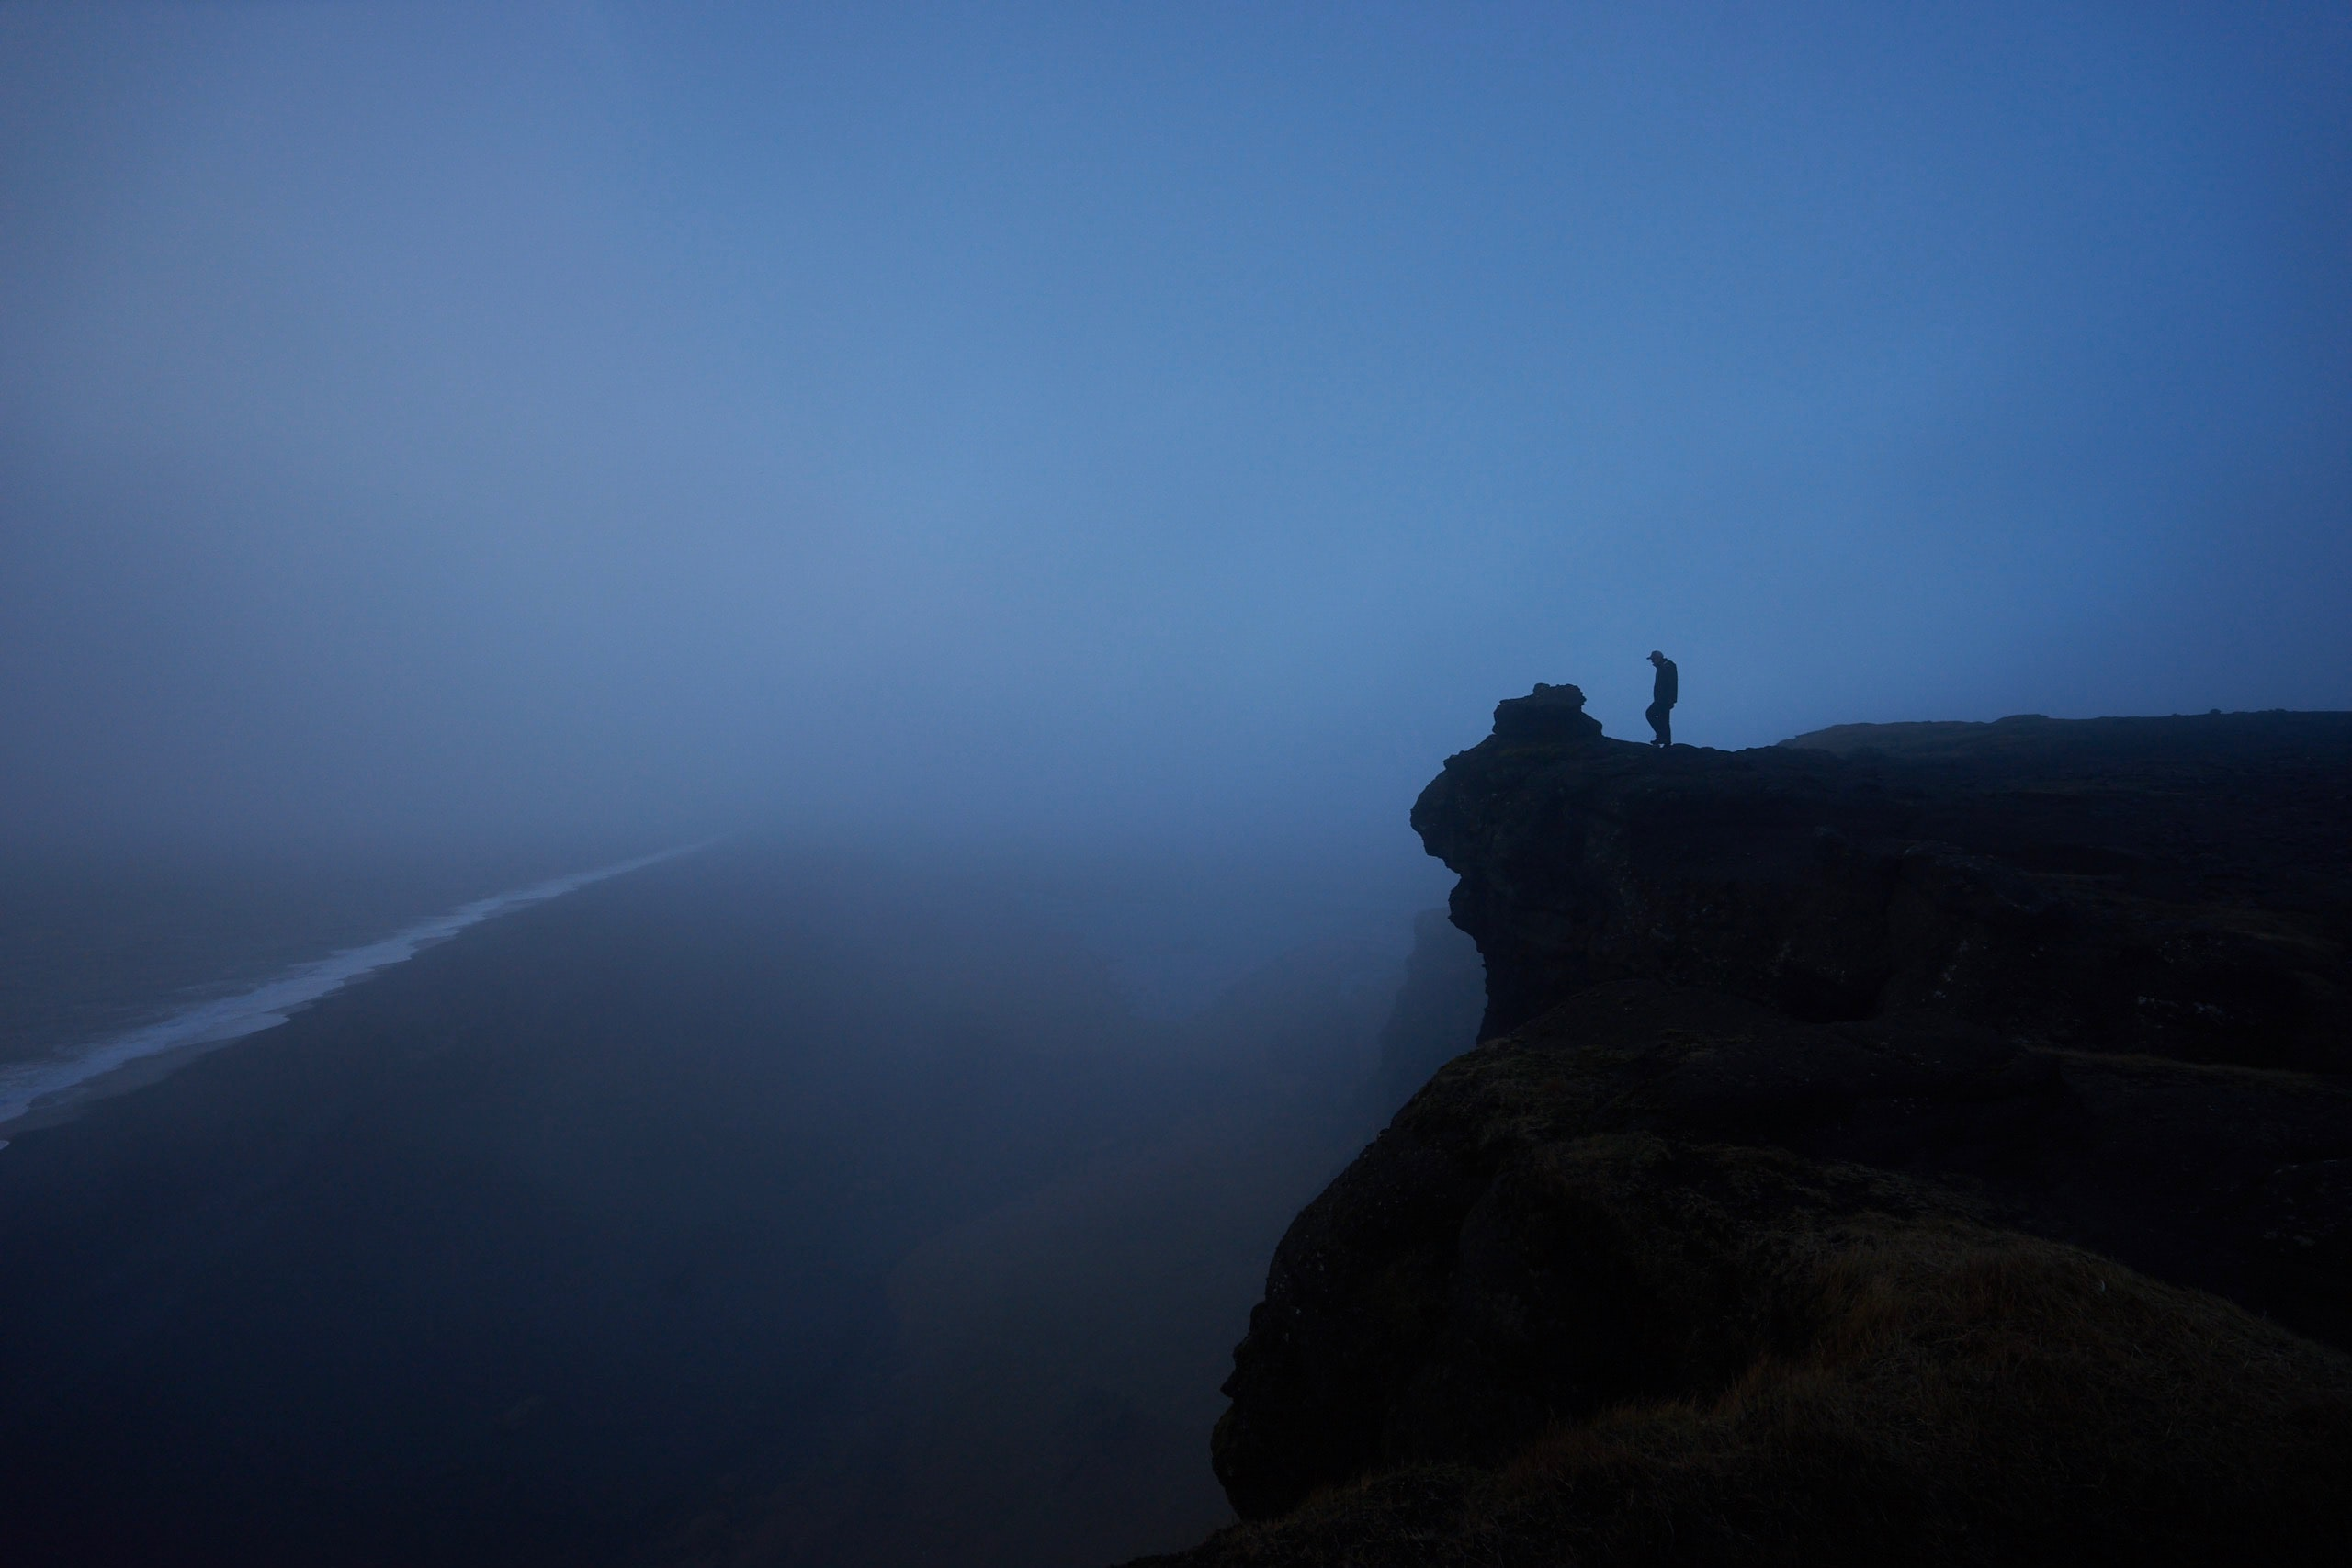 Silhouette of person on a mountain ledge near a misty shore